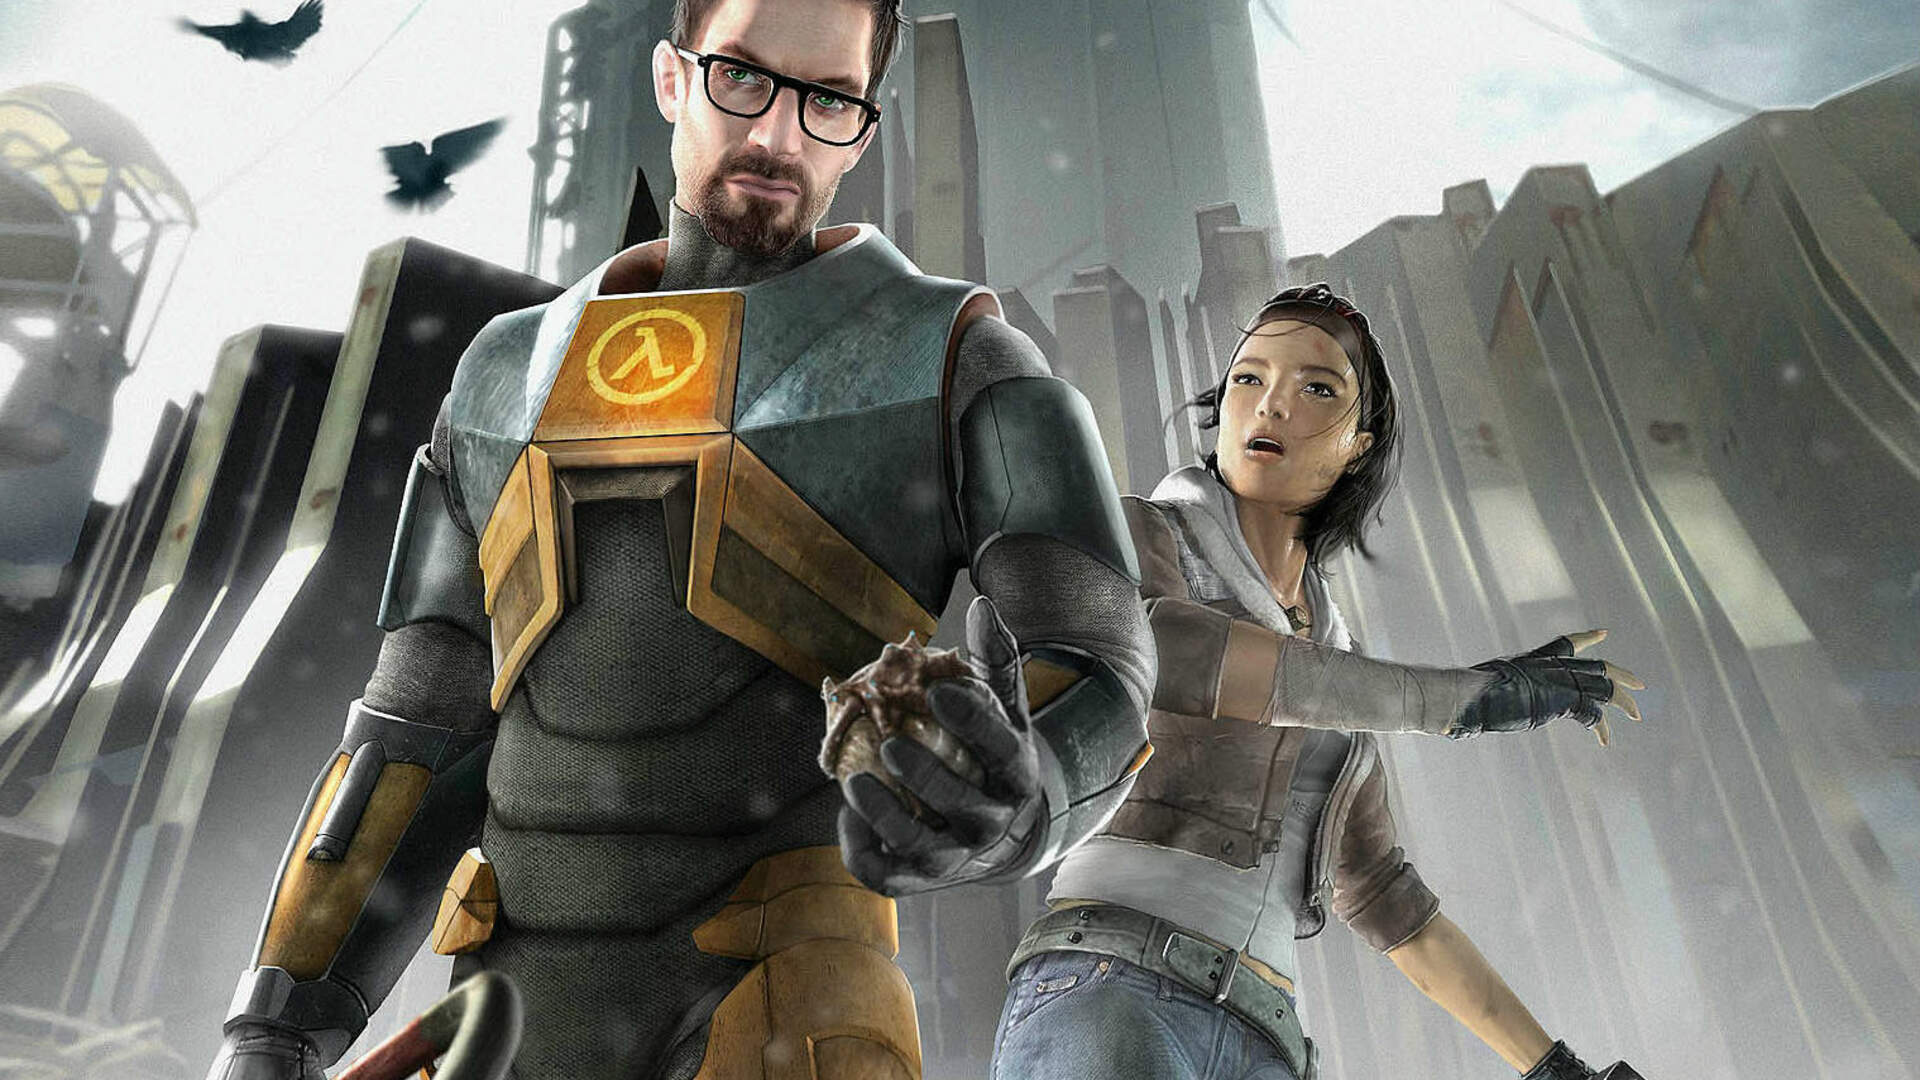 Gabe Newell Could Be Saying Half-Life 3 Will be Out in Five Years, Could Just be Trolling